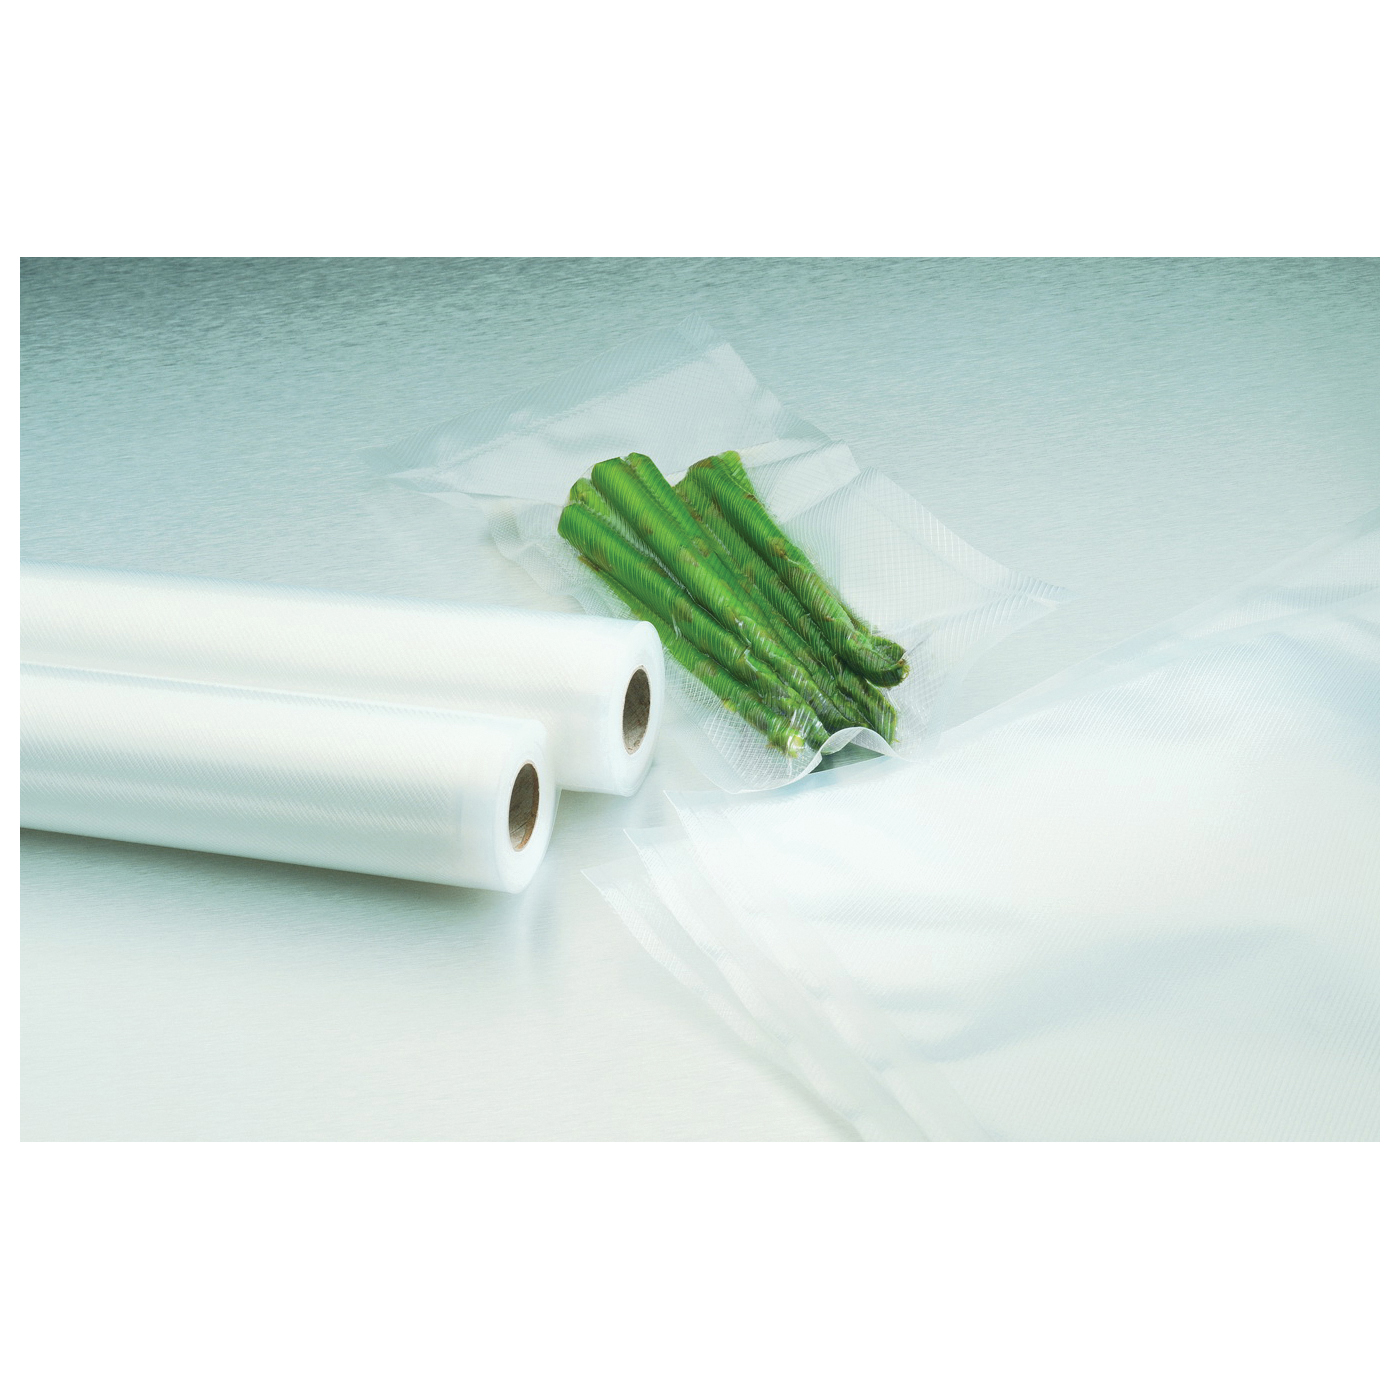 Picture of Seal-a-Meal FSSMBF0626-P00W Sealer Bag Roll, 1 gal Capacity